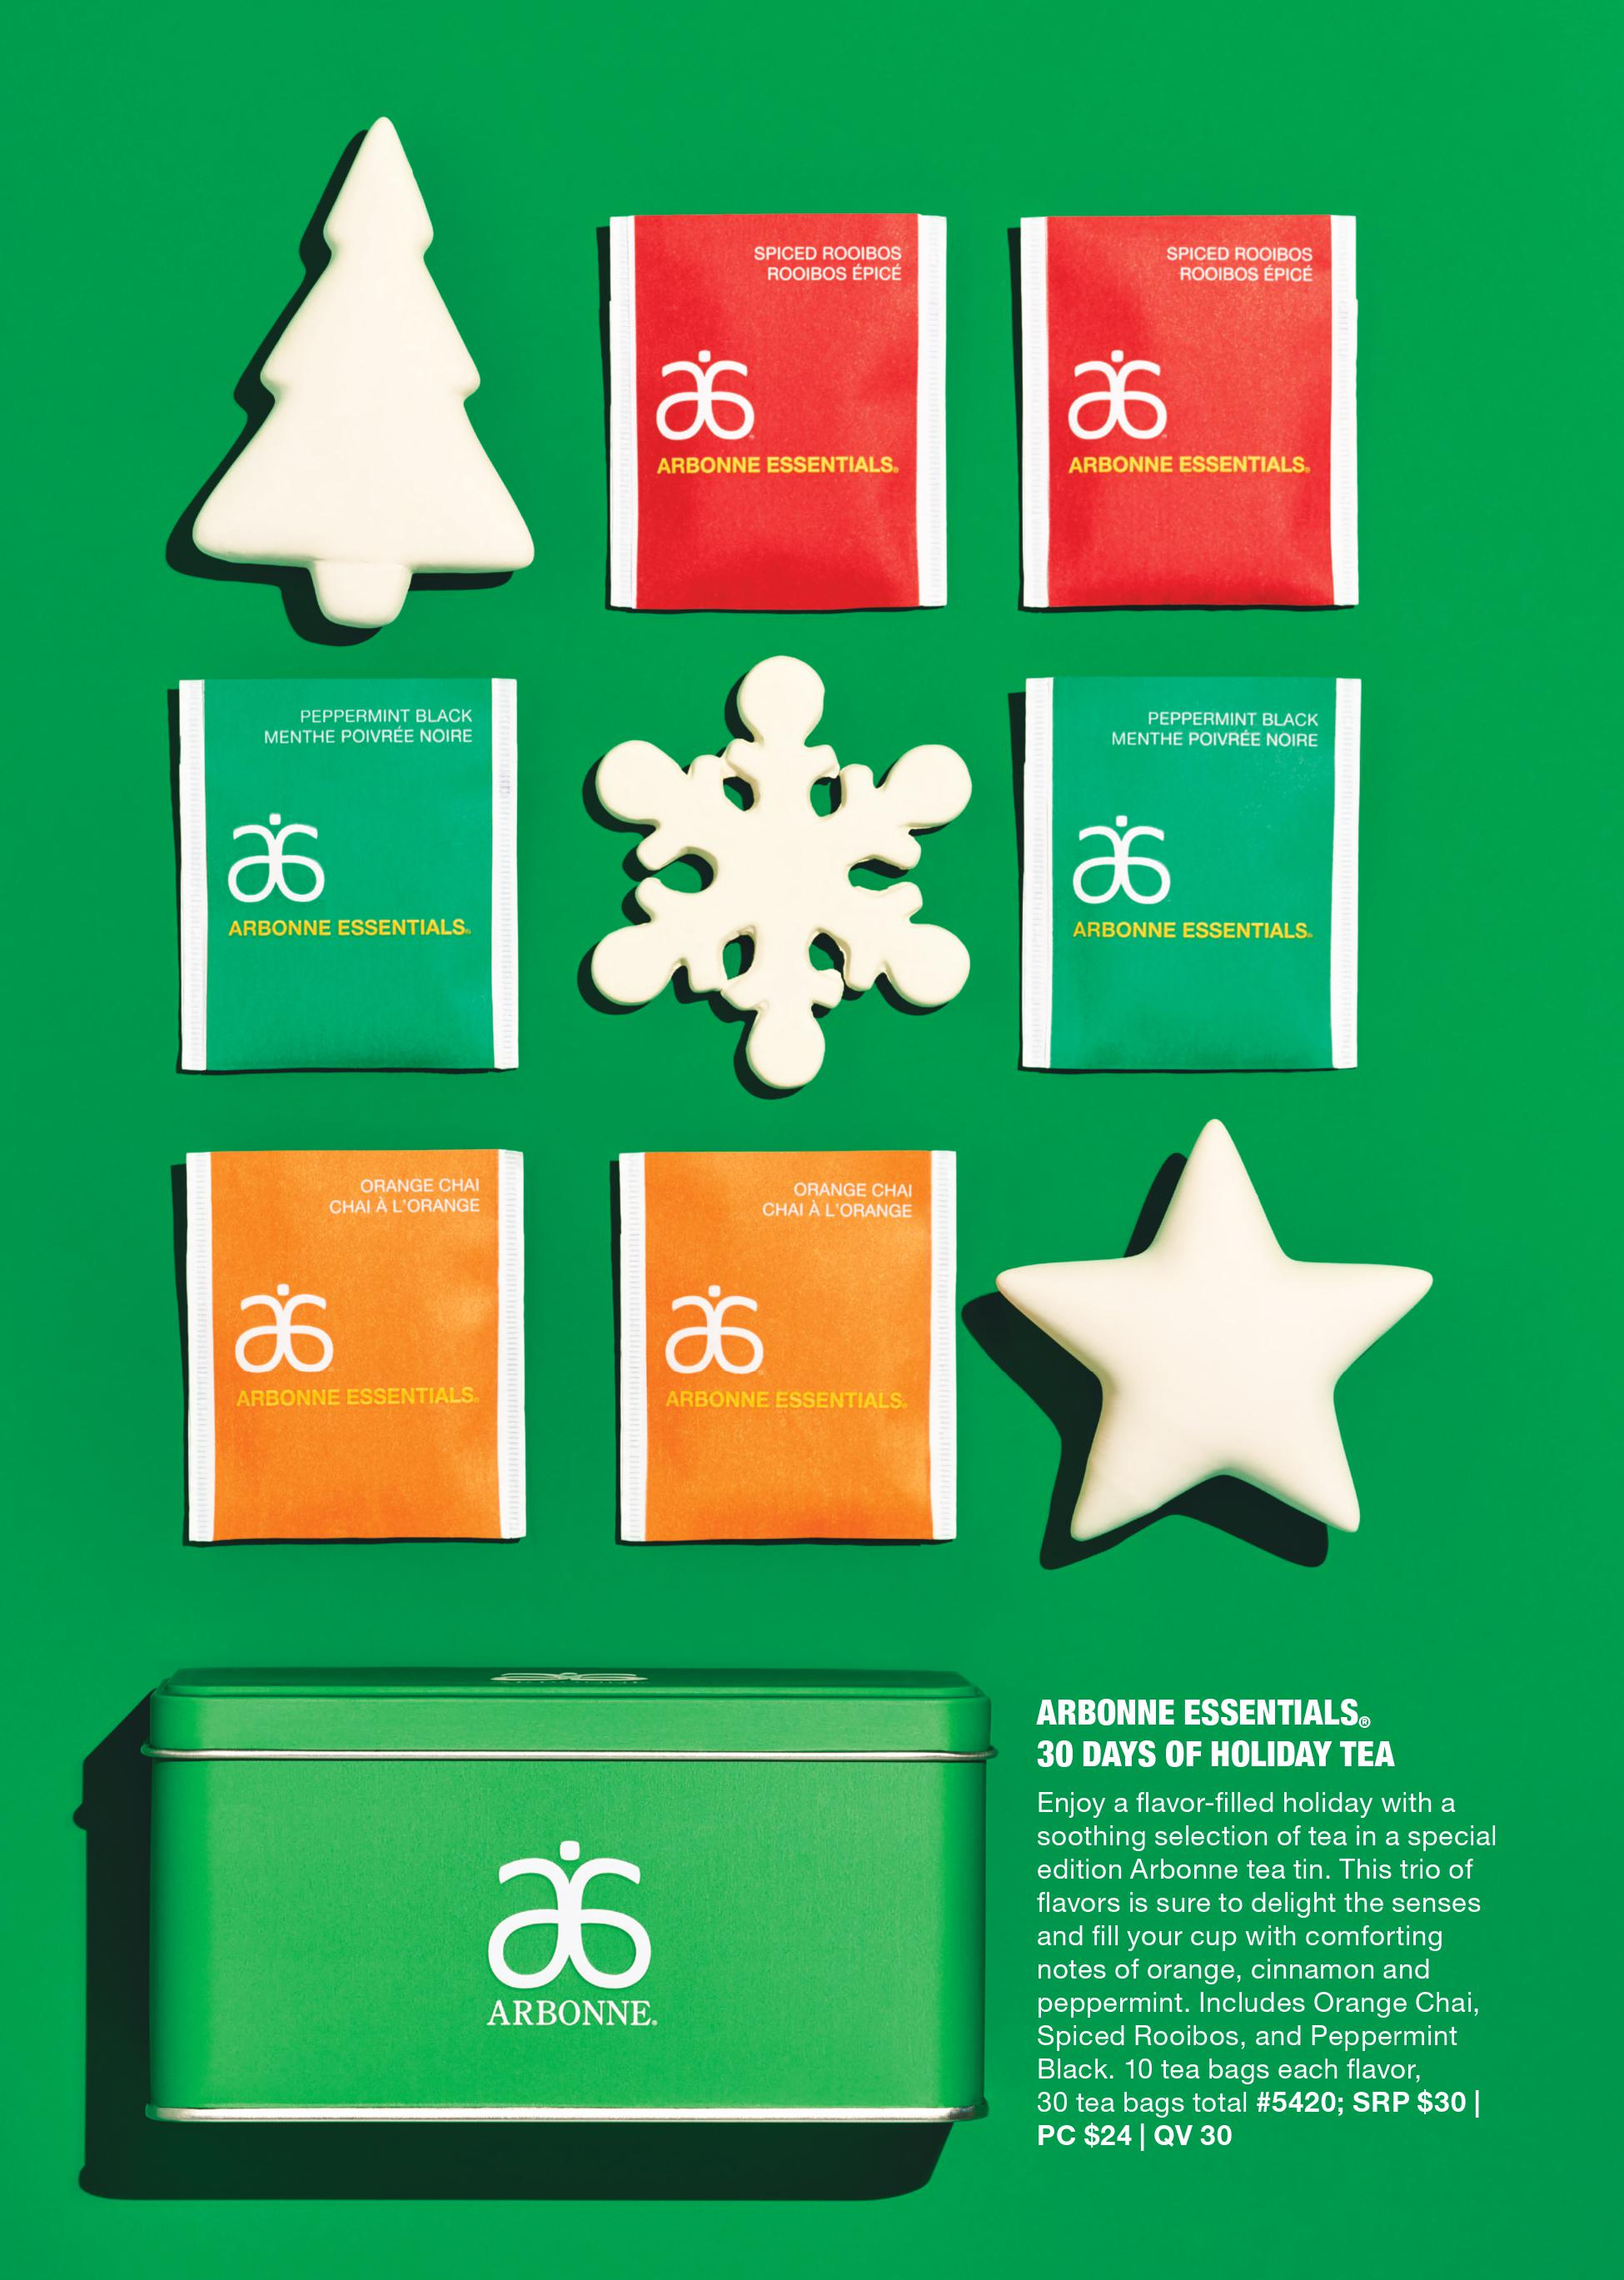 arbonne 30 days of holiday tea